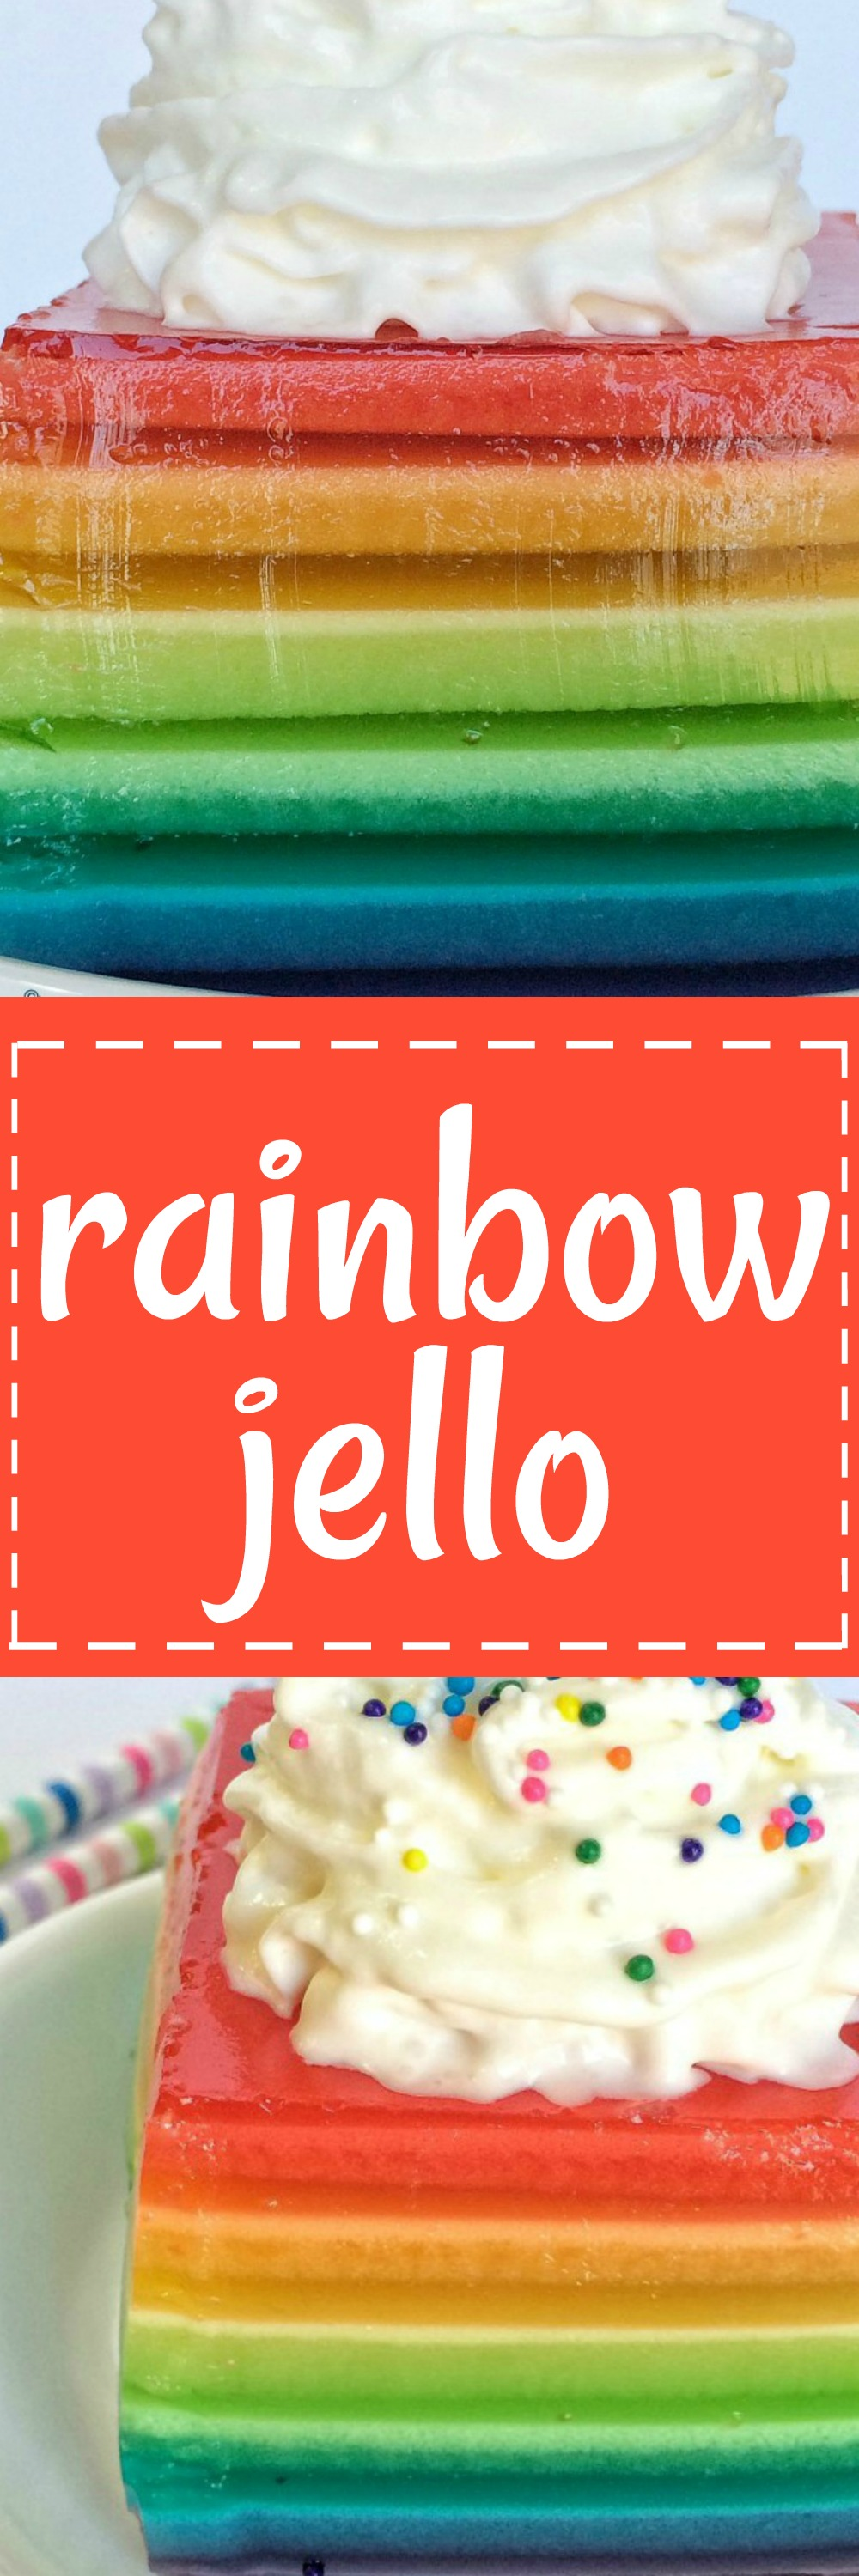 Rainbow Jello Together as Family